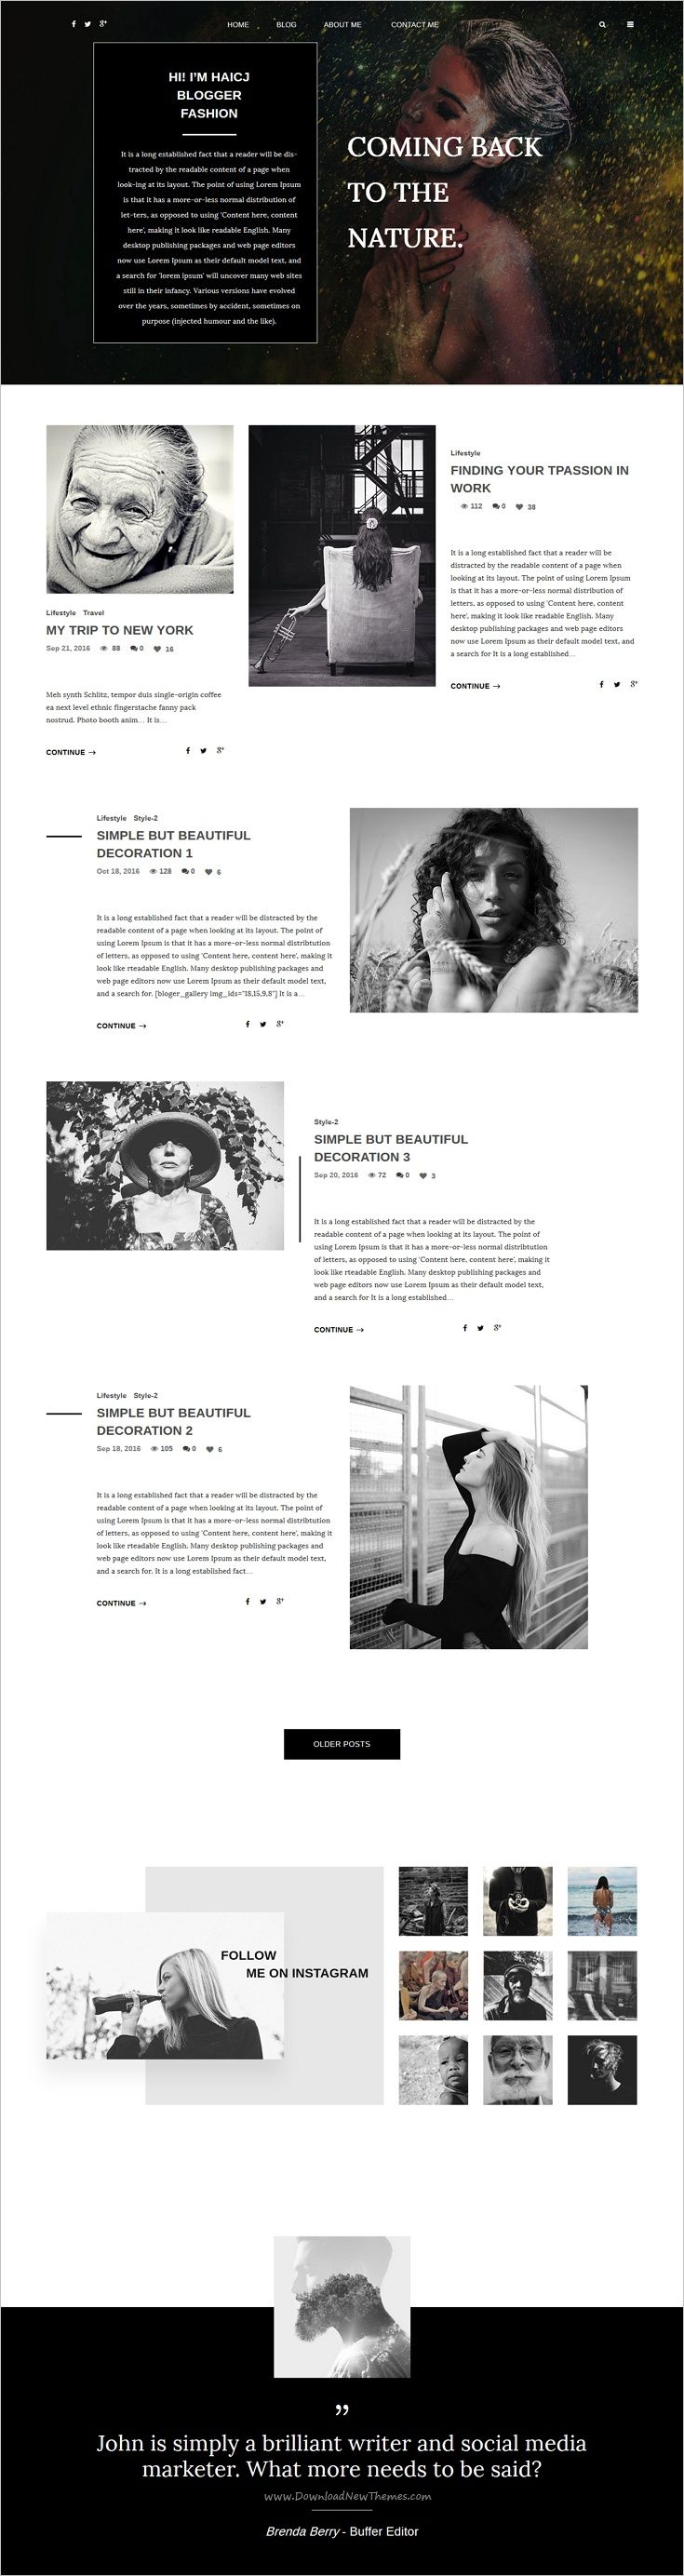 BLOGR is a awesome personal responsive 3in1 #WordPress #blog theme for special #writers and content marketer websites download now➩ https://themeforest.net/item/blogr-wordpress-theme-for-special-bloggers/18219085?ref=Datasata